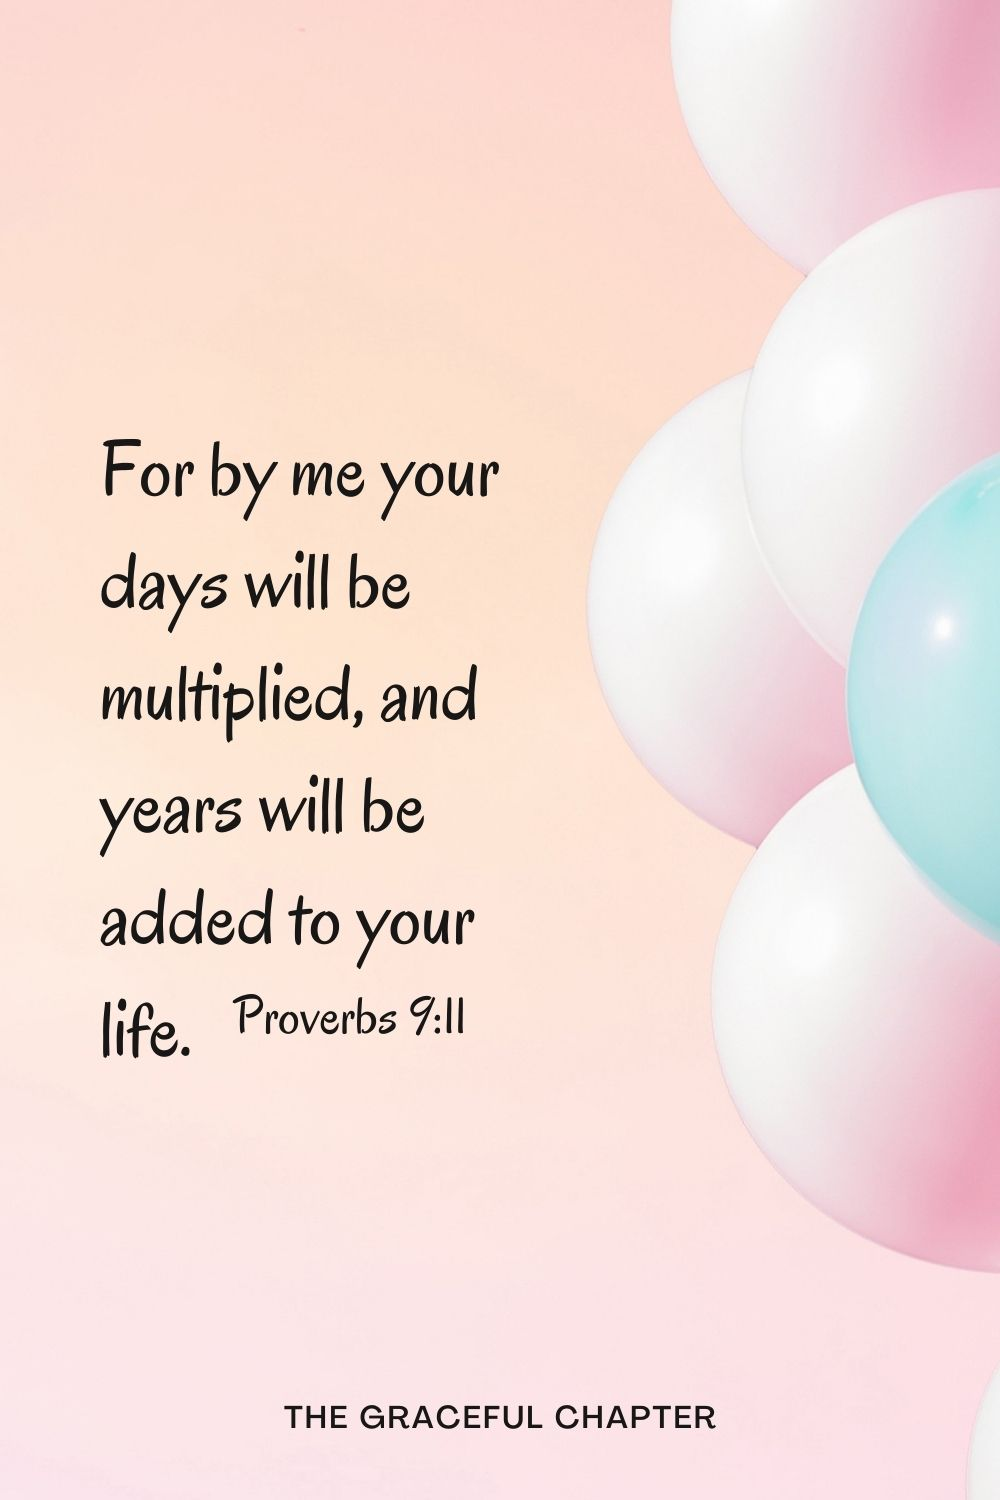 For by me your days will be multiplied, and years will be added to your life. For by me your days will be multiplied, and years will be added to your life. Proverbs 9:11